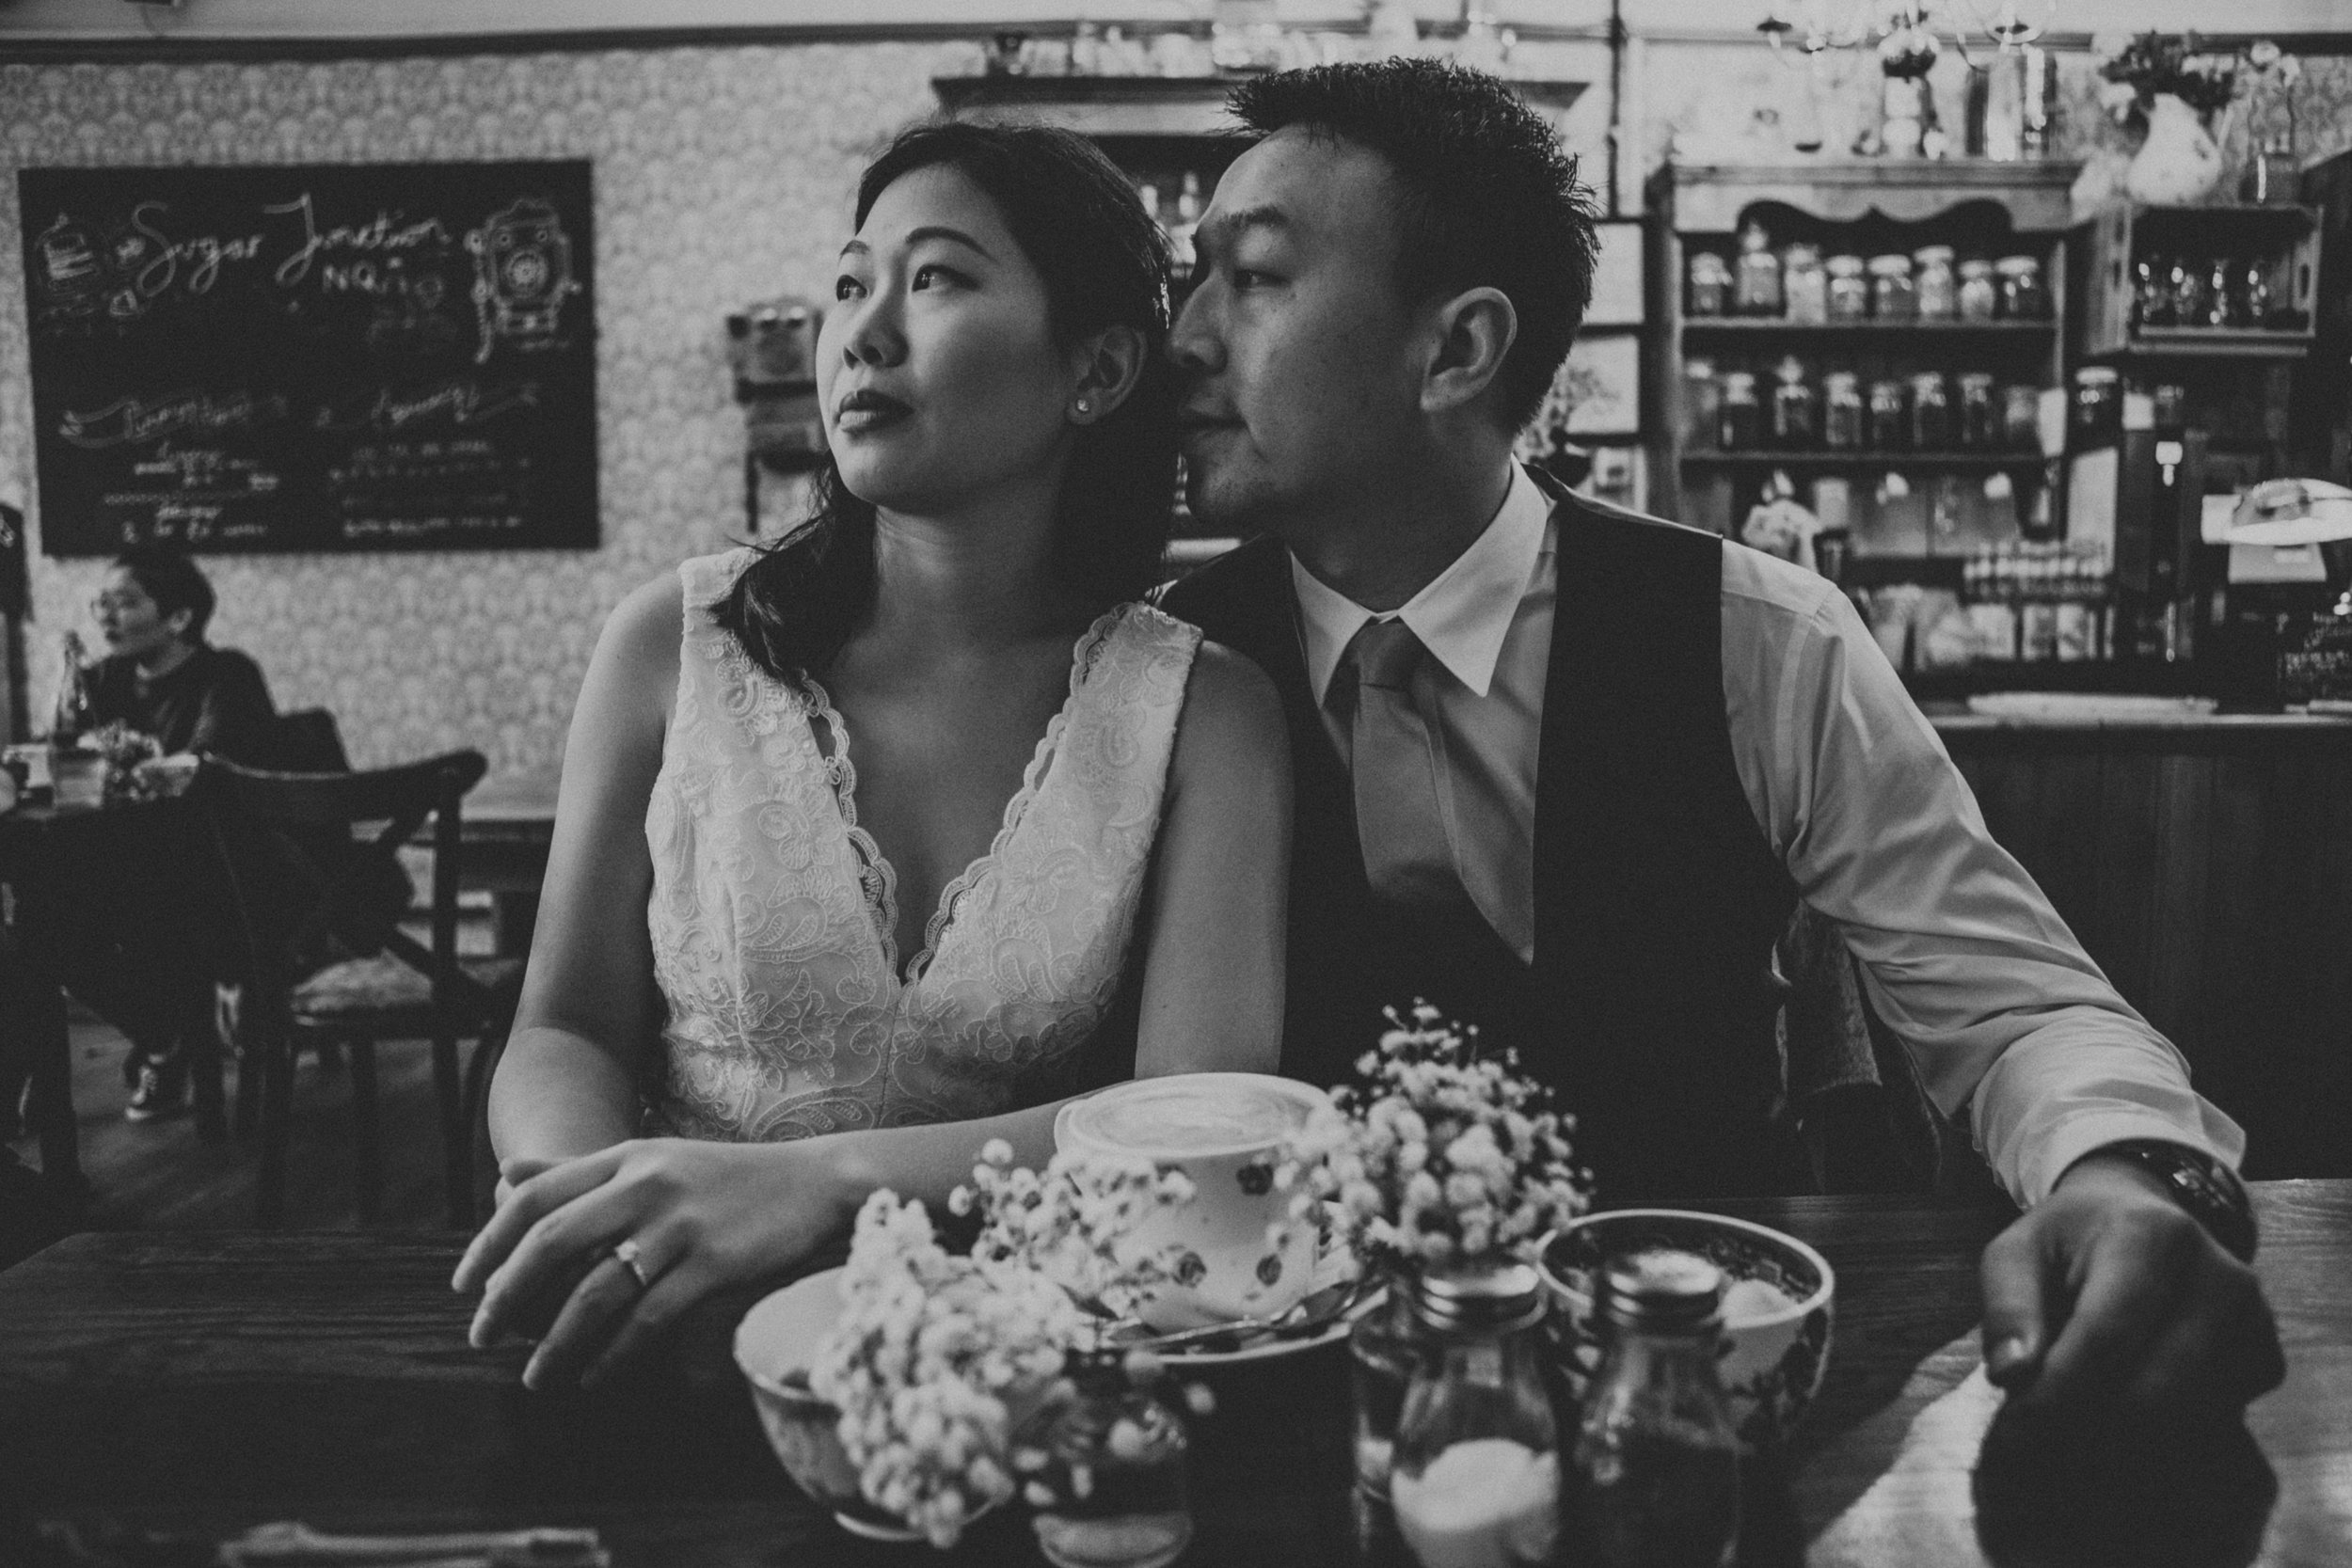 Black and White photo of couple in Sugar Junction.